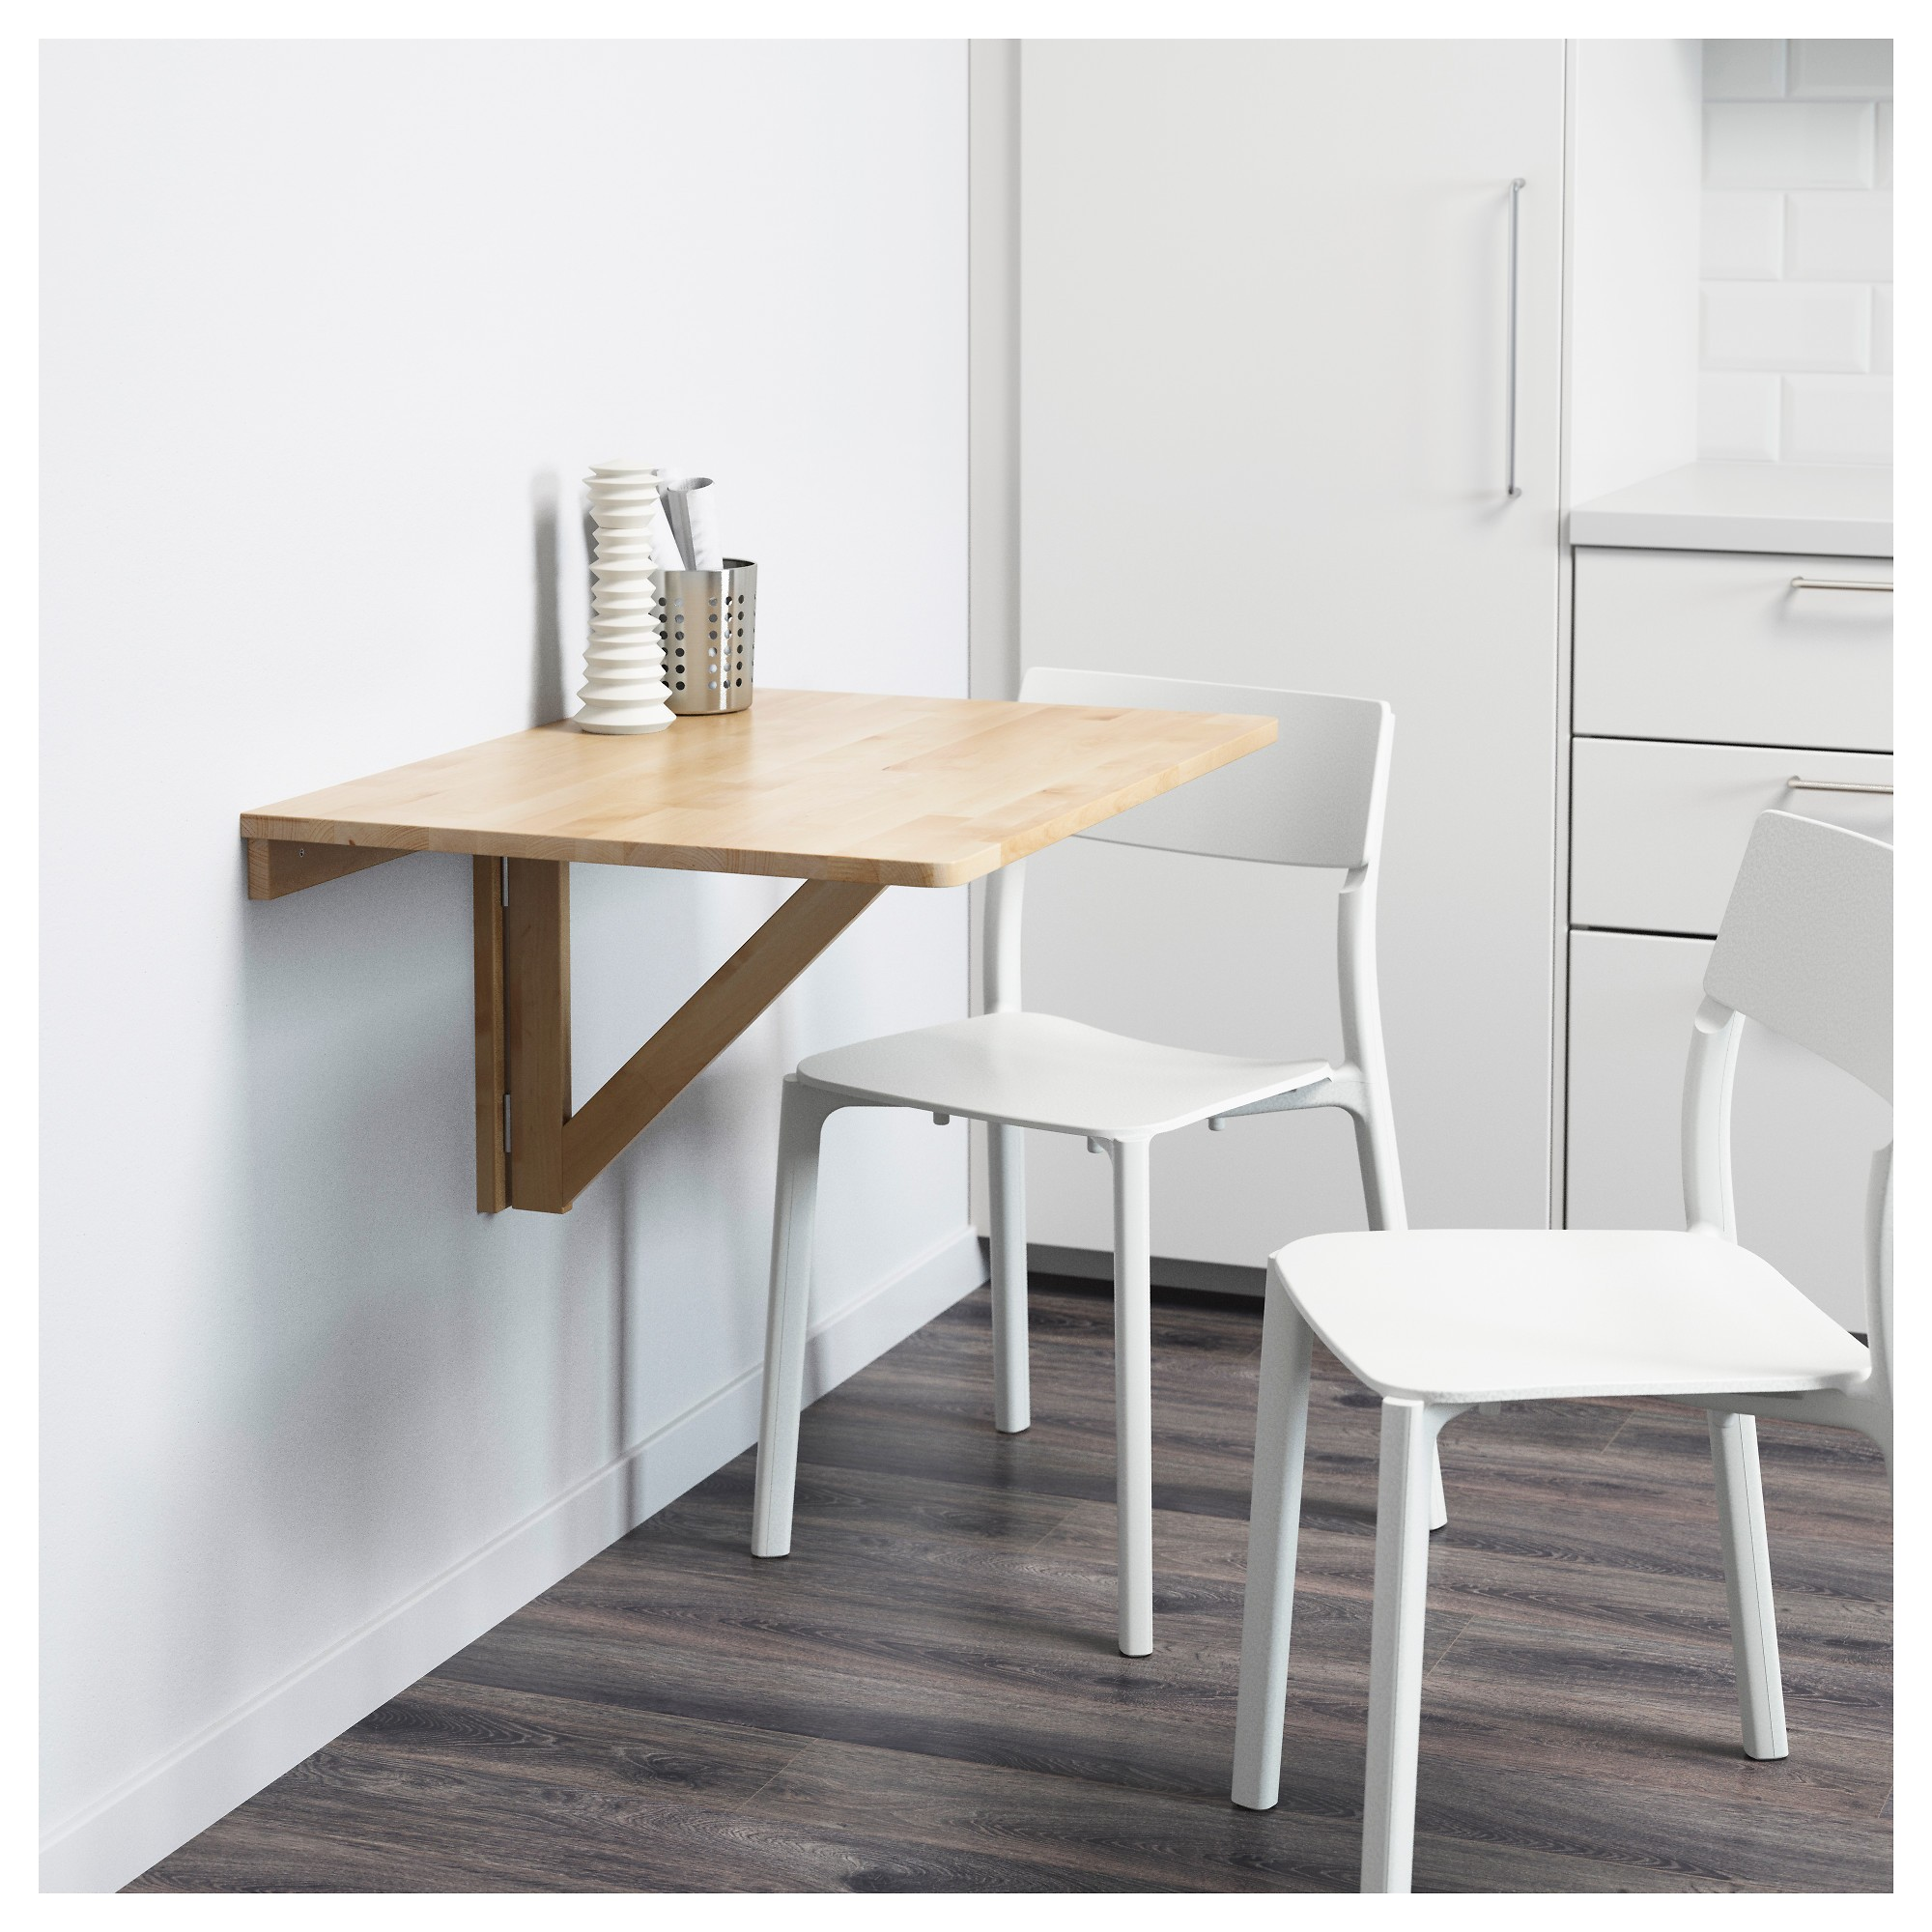 Table cuisine pliante murale ikea cuisine id es de for Table pliante de cuisine